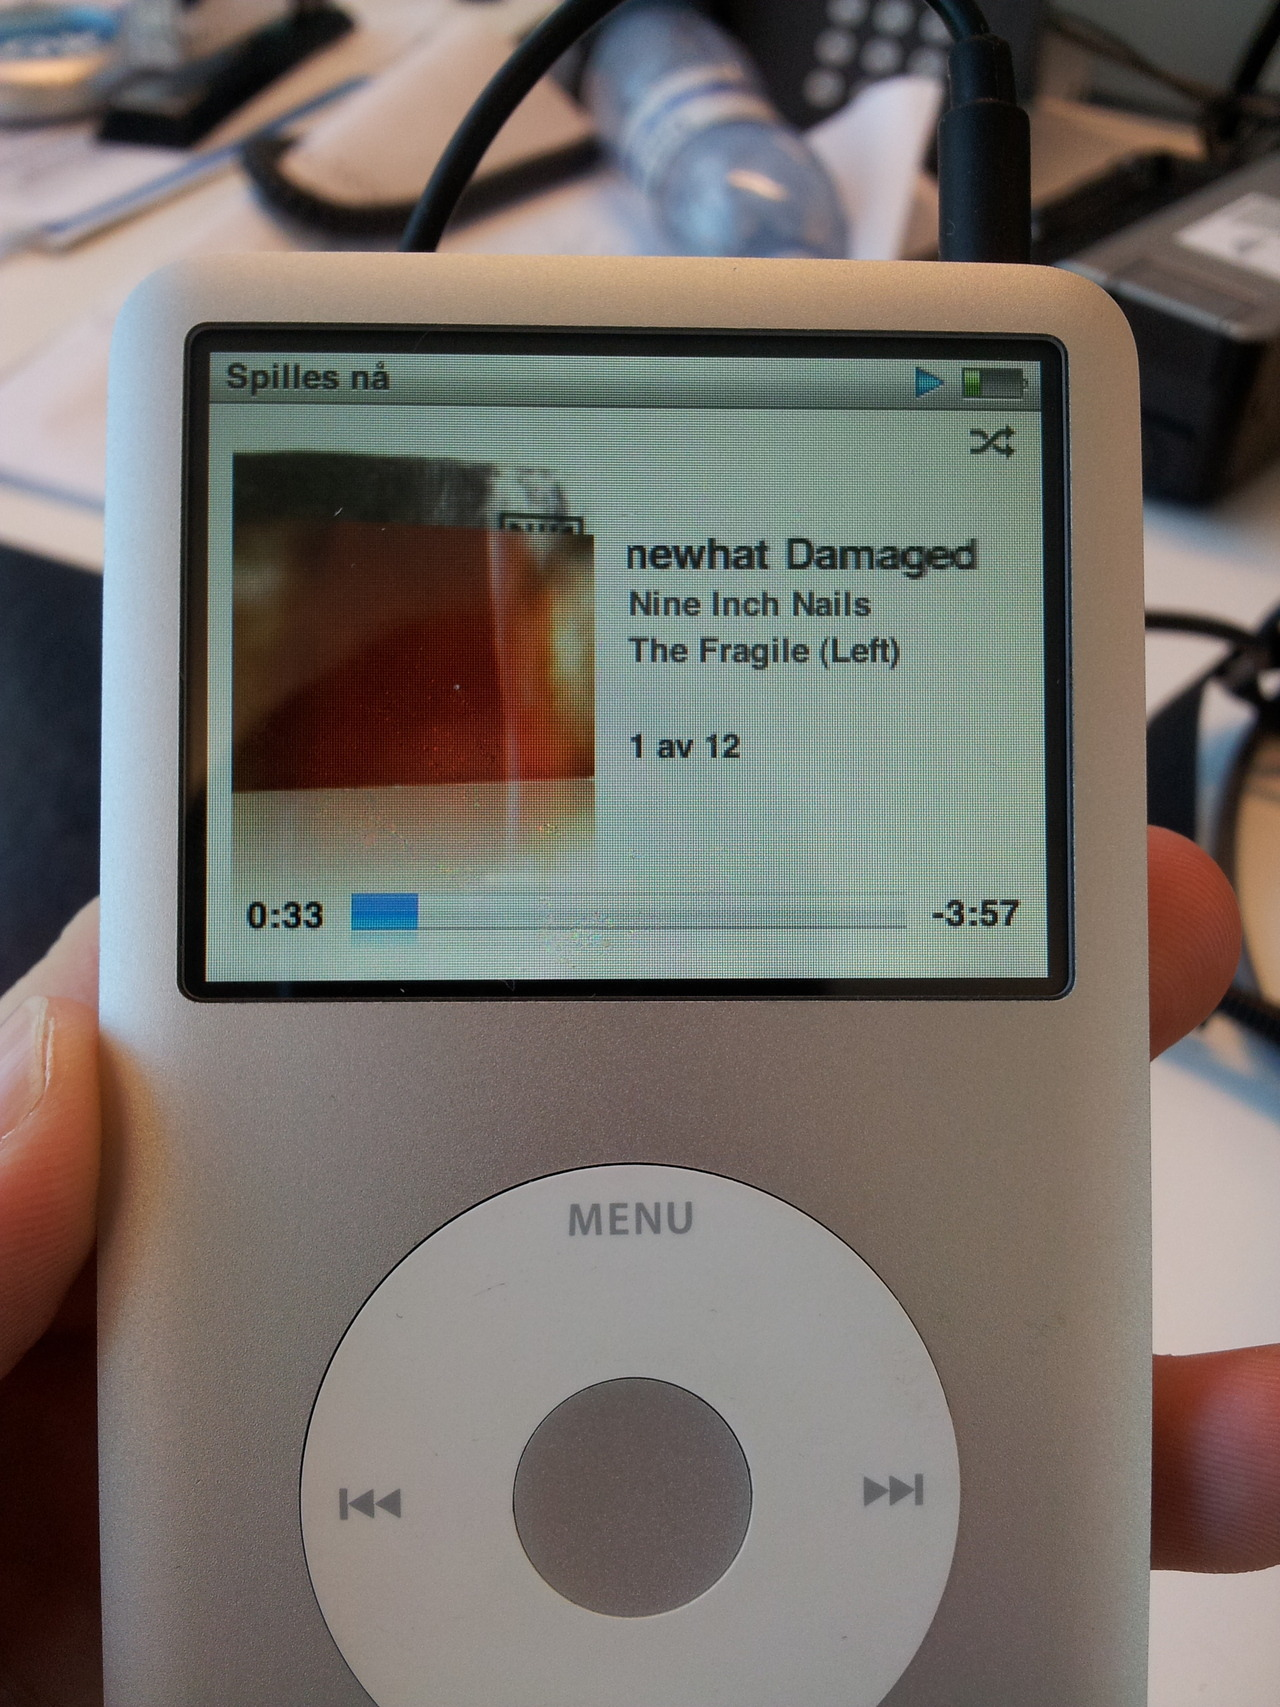 Today's soundtrack: Nine Inch Nails - The Fragile.